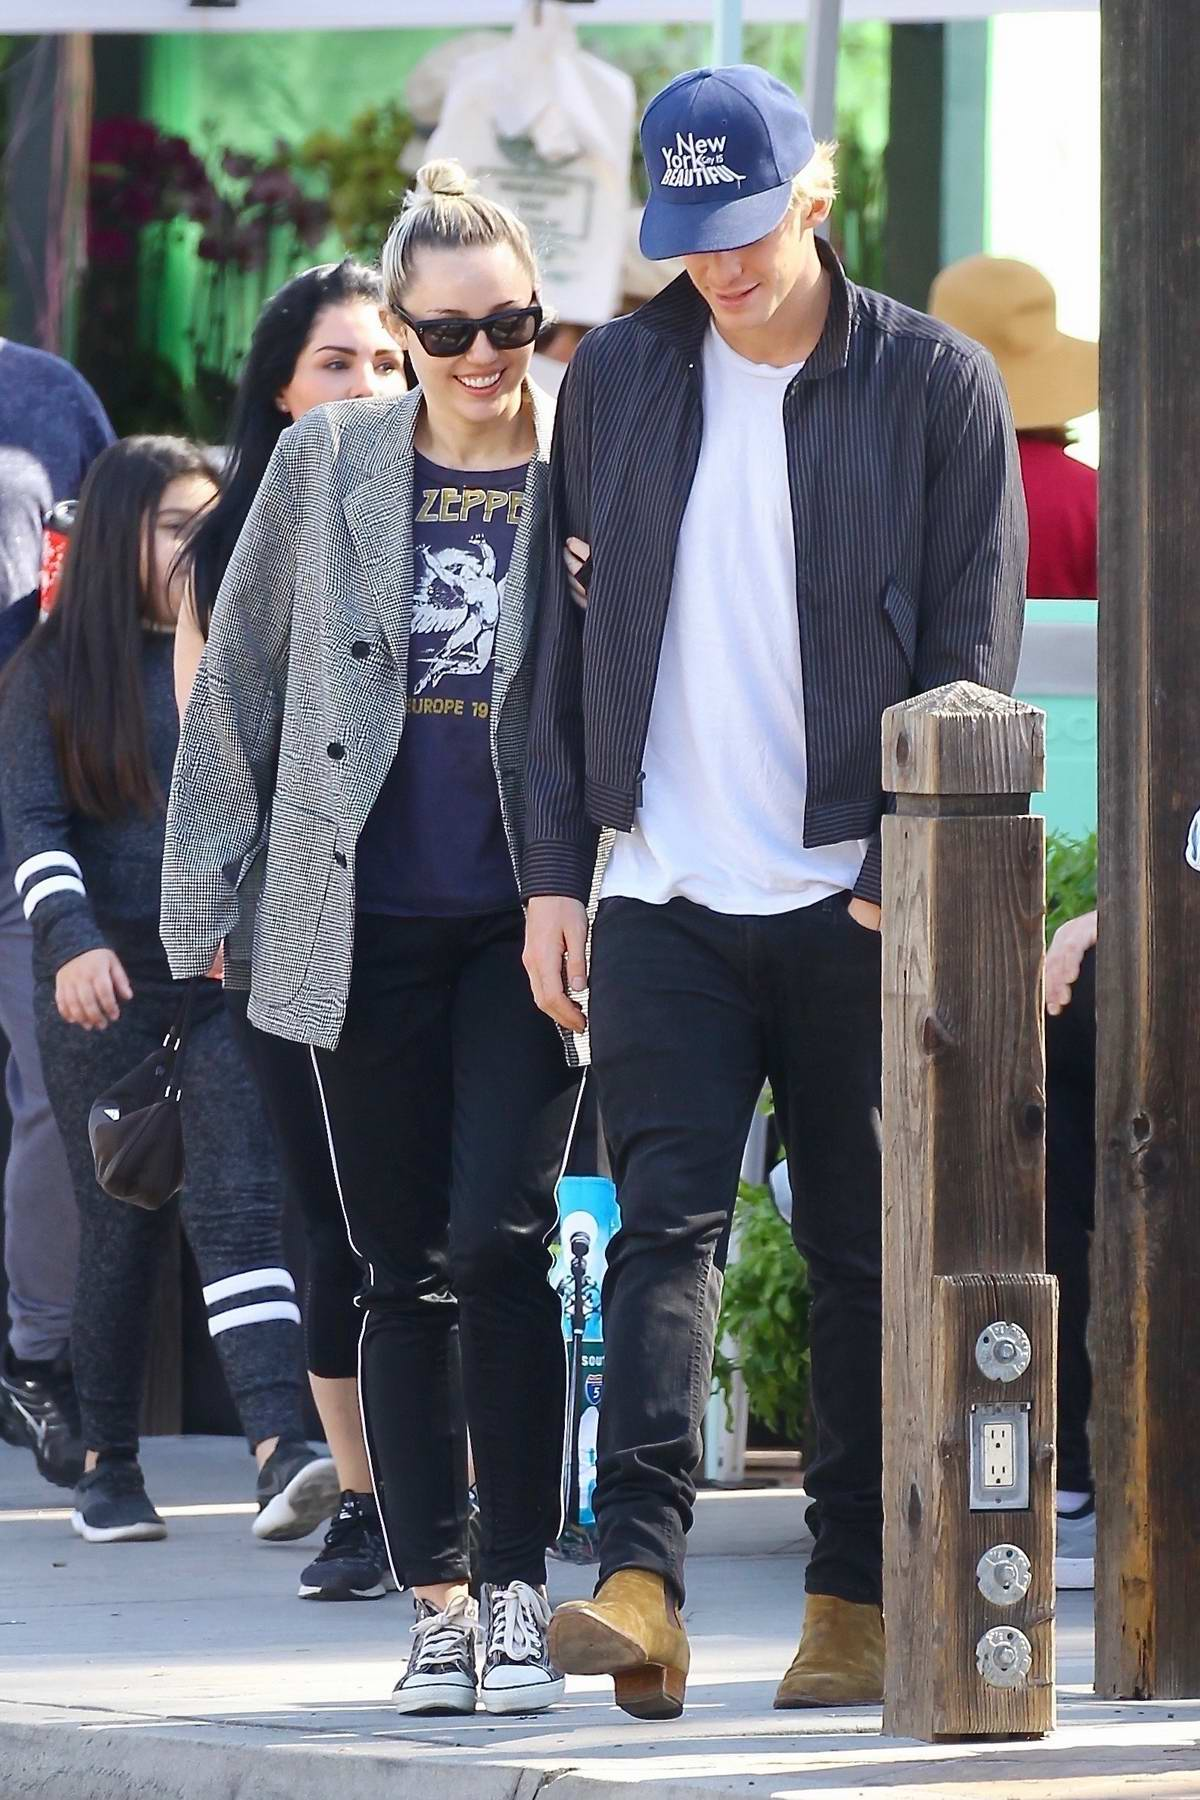 Miley Cyrus and Cody Simpson are all smiles while shopping in Calabasas, California